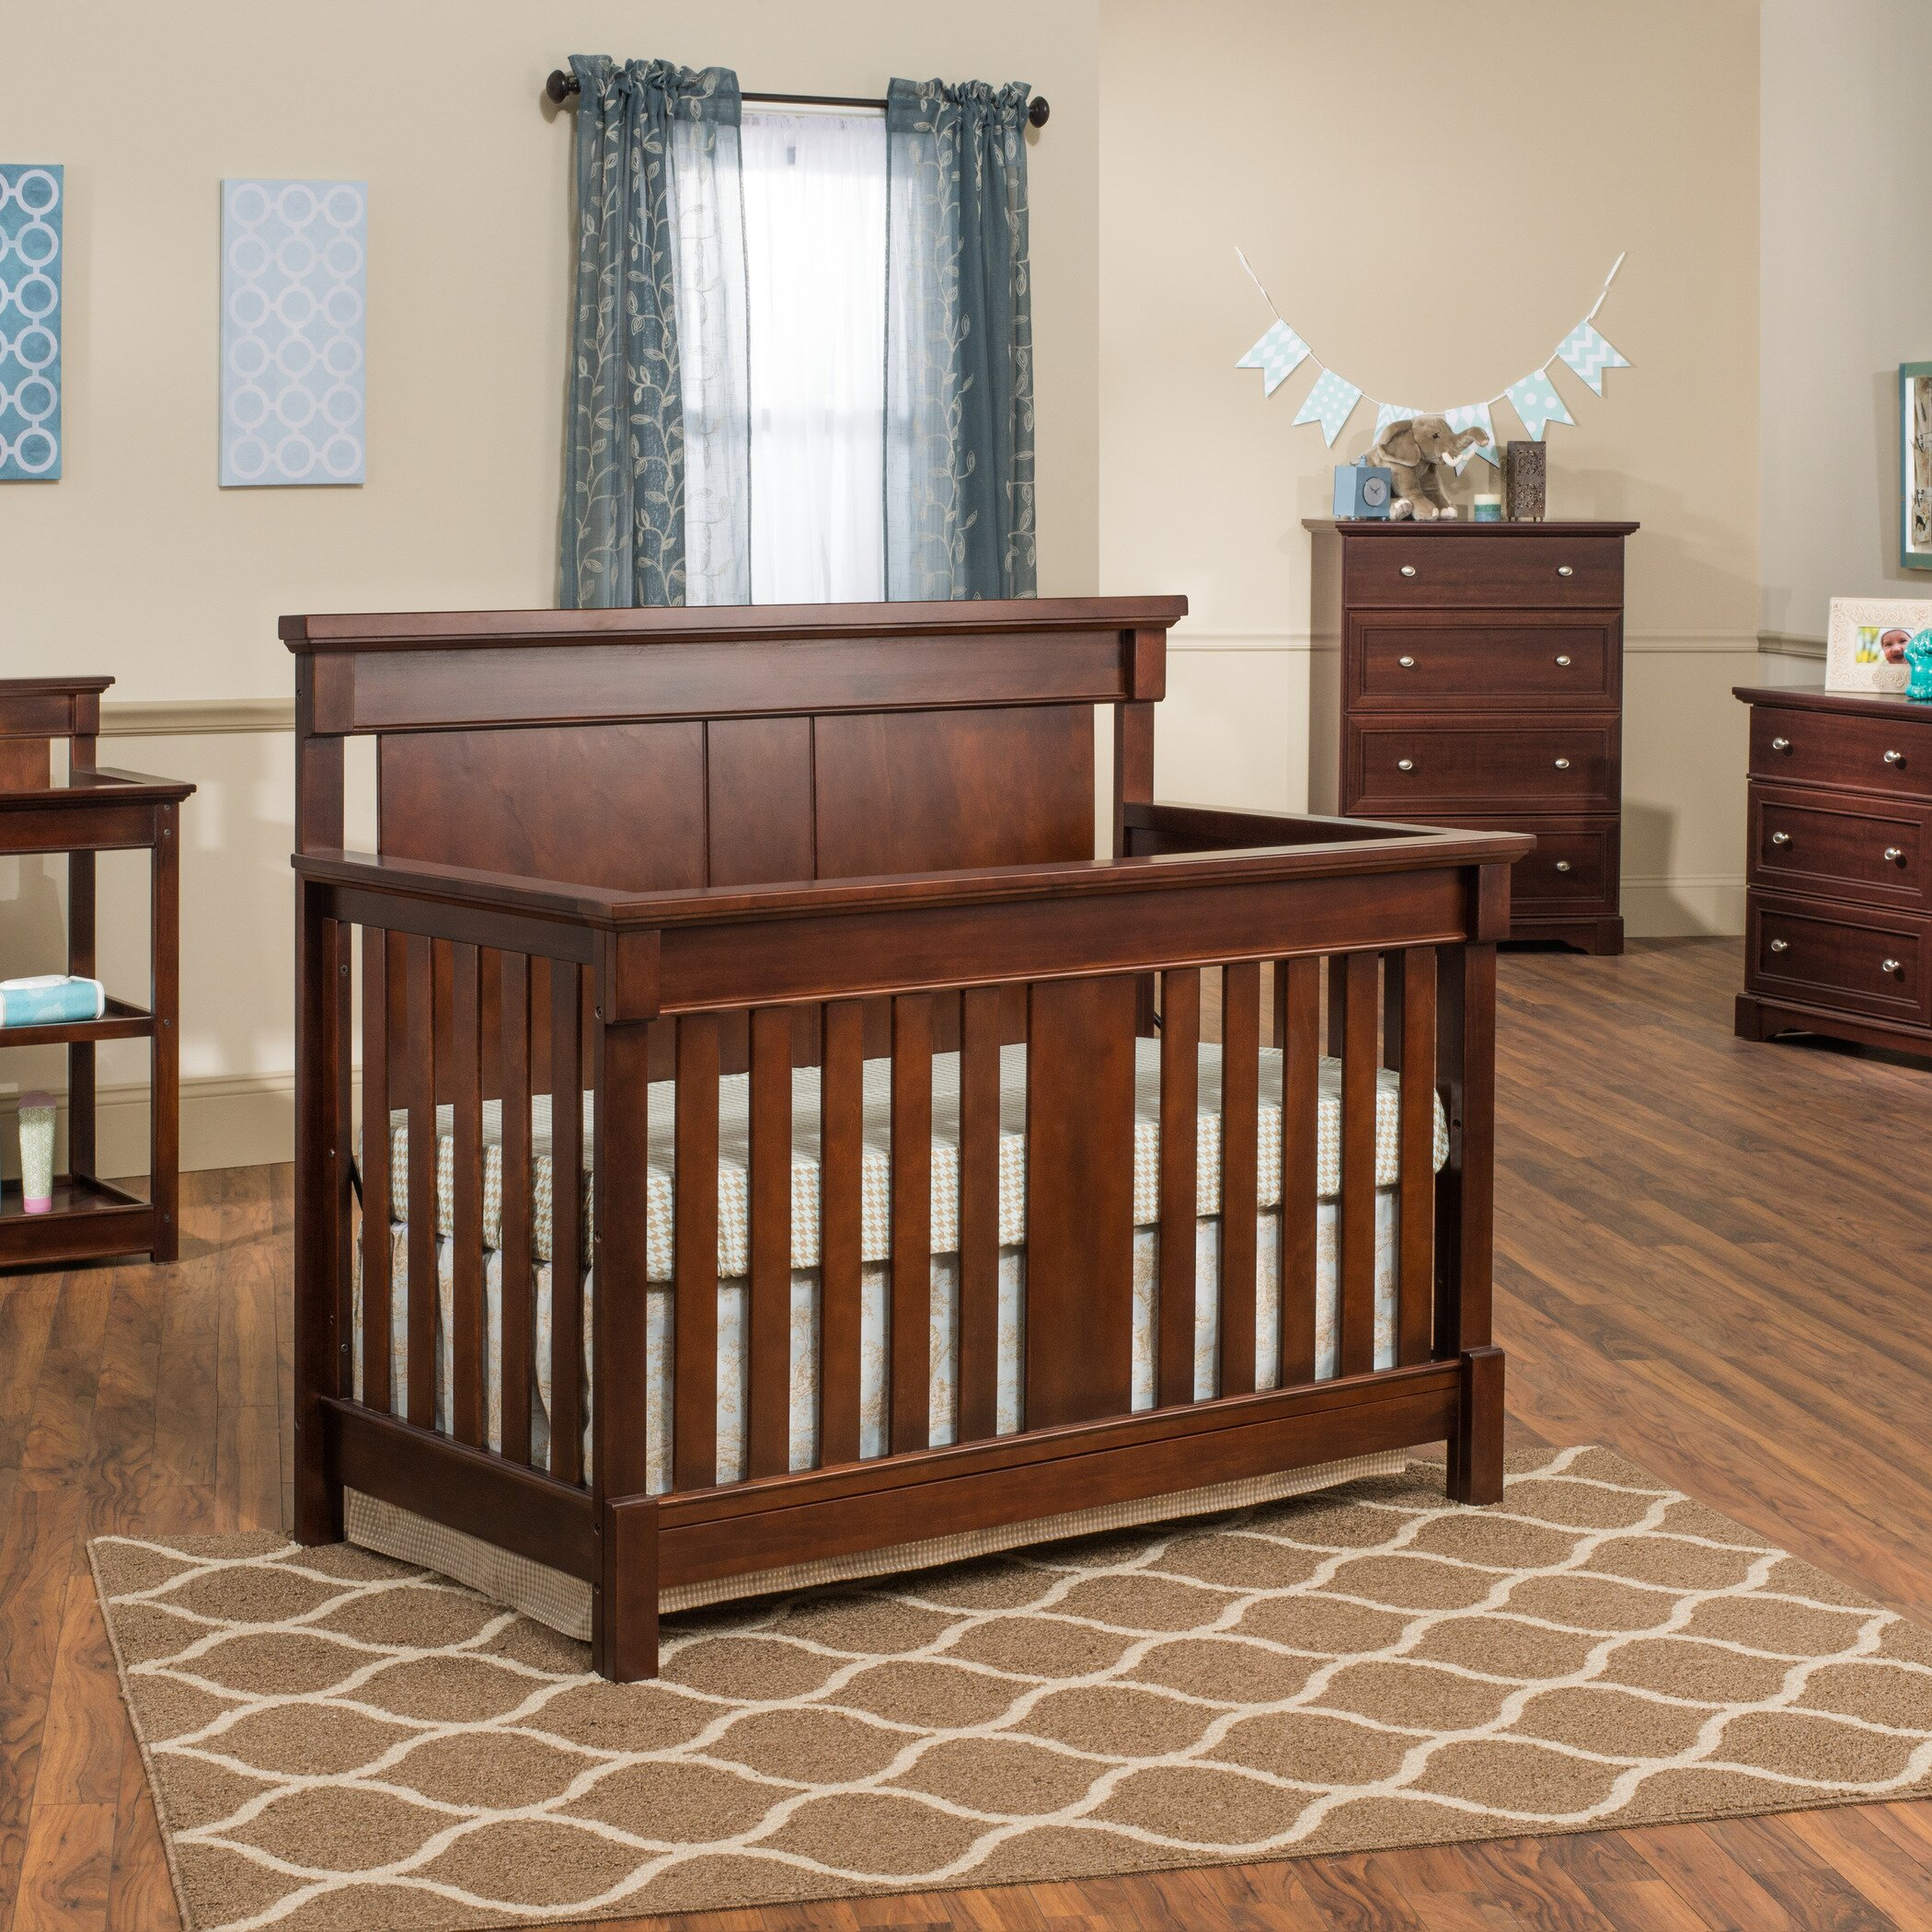 Used crib for sale edmonton - Child Craft Bradford Lifetime 4 In 1 Convertible Crib